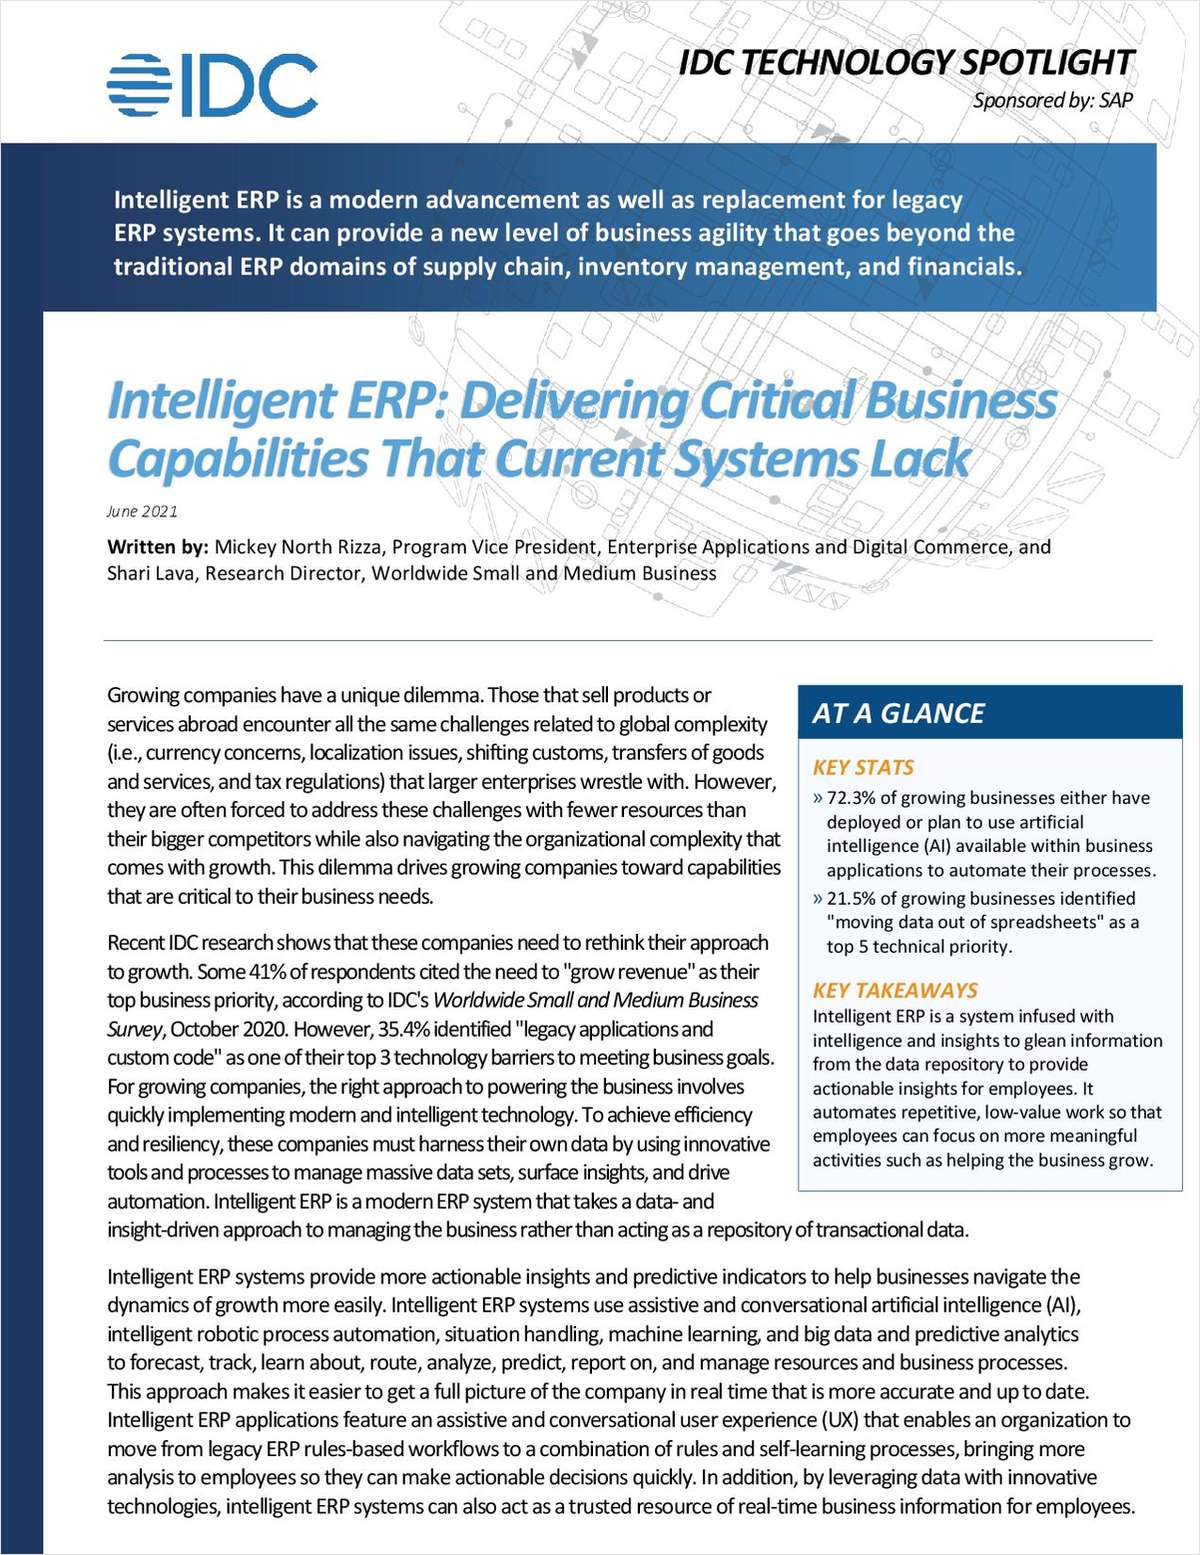 Intelligent ERP: Delivering Critical Business Capabilities that Current Systems Lack